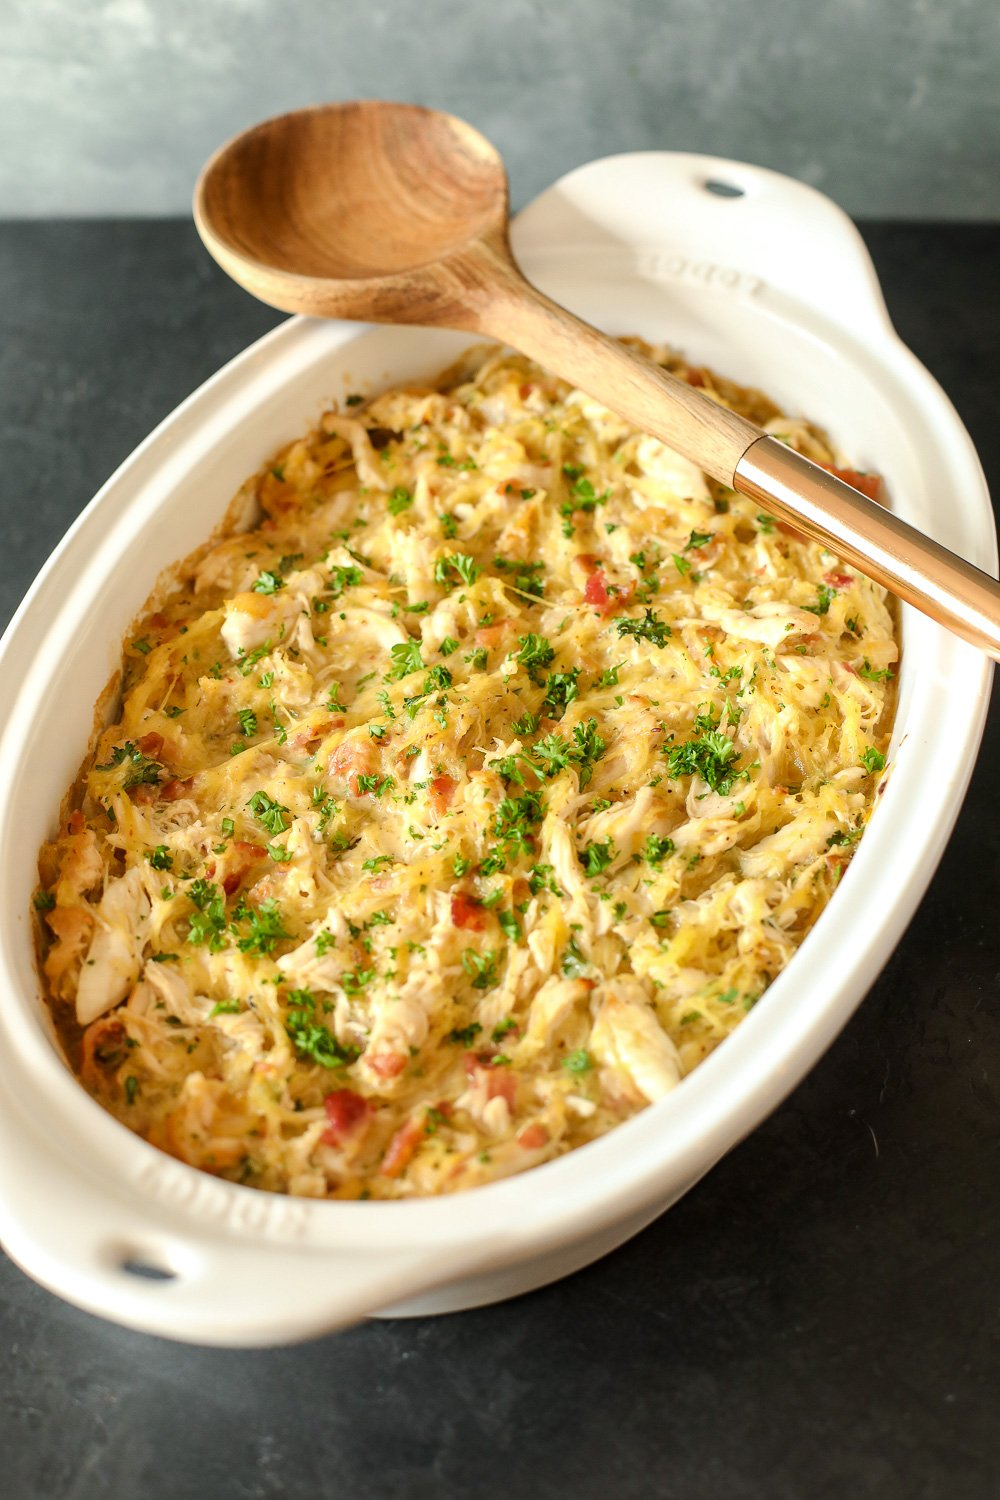 This Chicken Bacon Ranch Spaghetti Squash Casserole is Whole30 compliant, easy to make and so delicious!